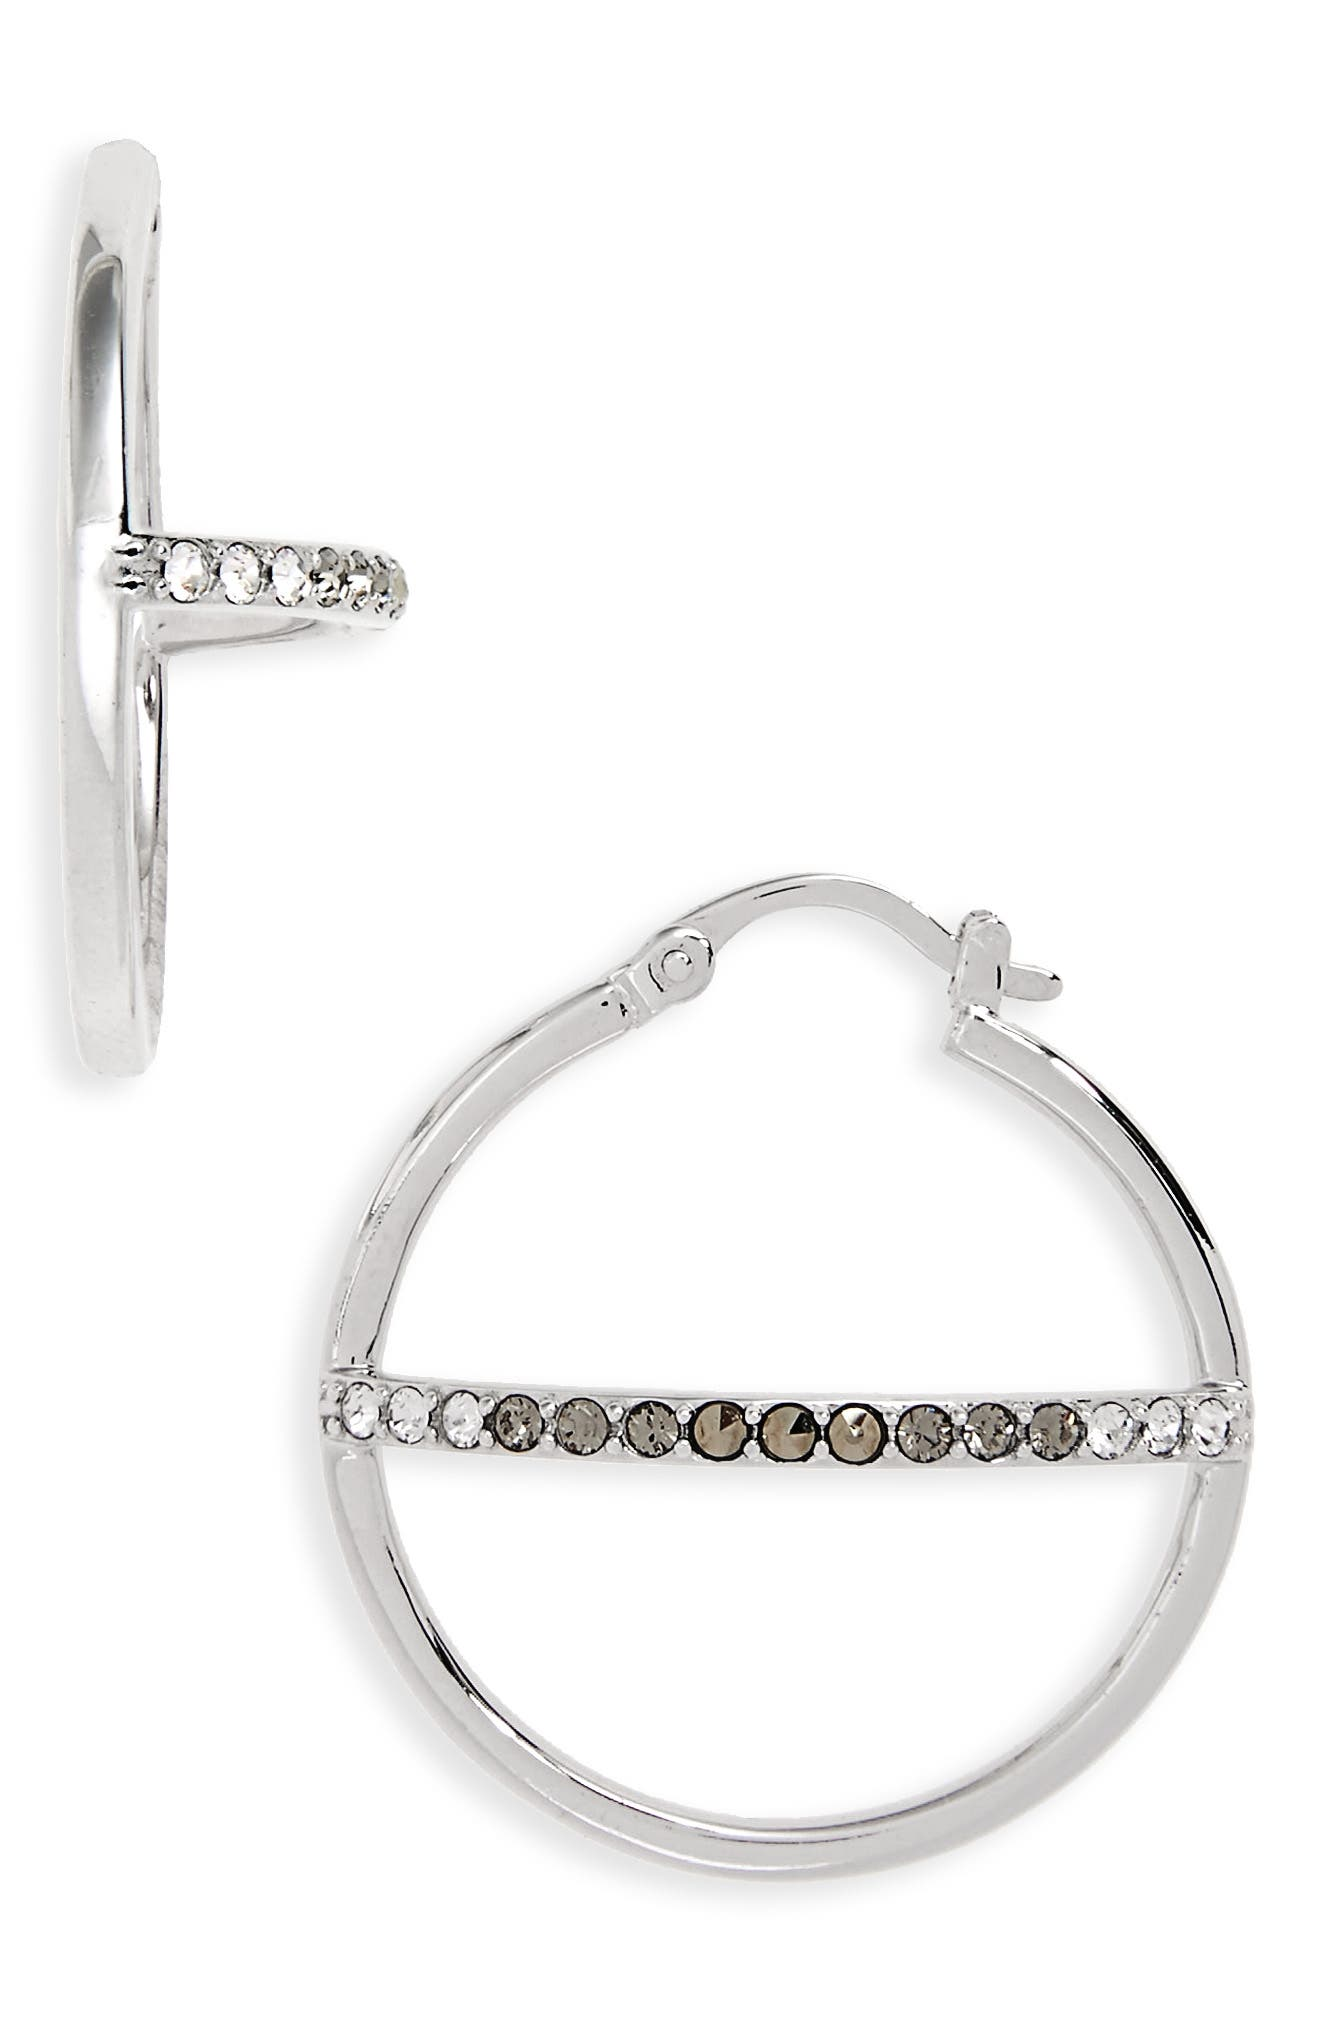 Silver Sparkle Hoop Earrings,                         Main,                         color, Black Diamond/ Marcasite